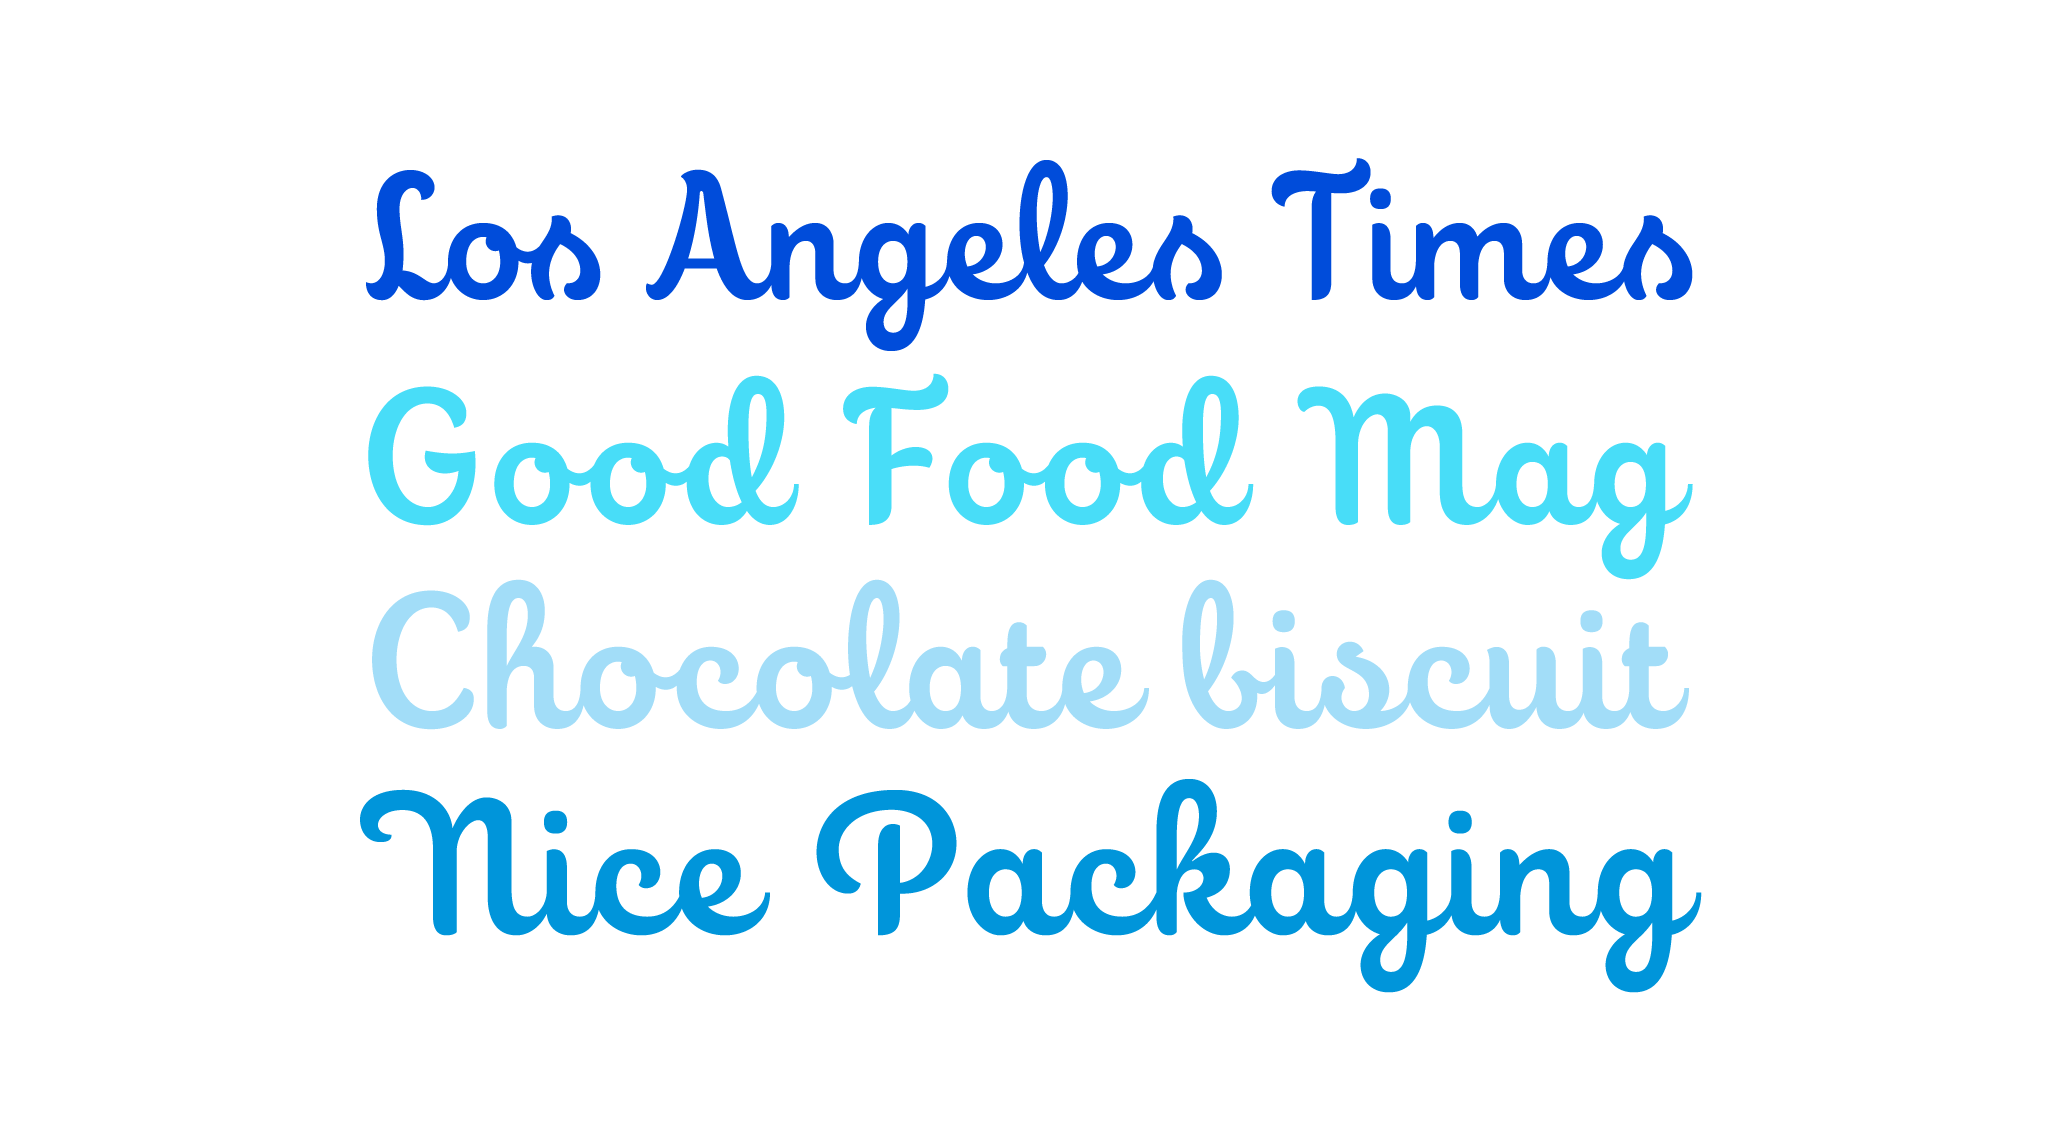 Choco is a new script typeface designed by Andrei Robu. Available on www.typeverything.com